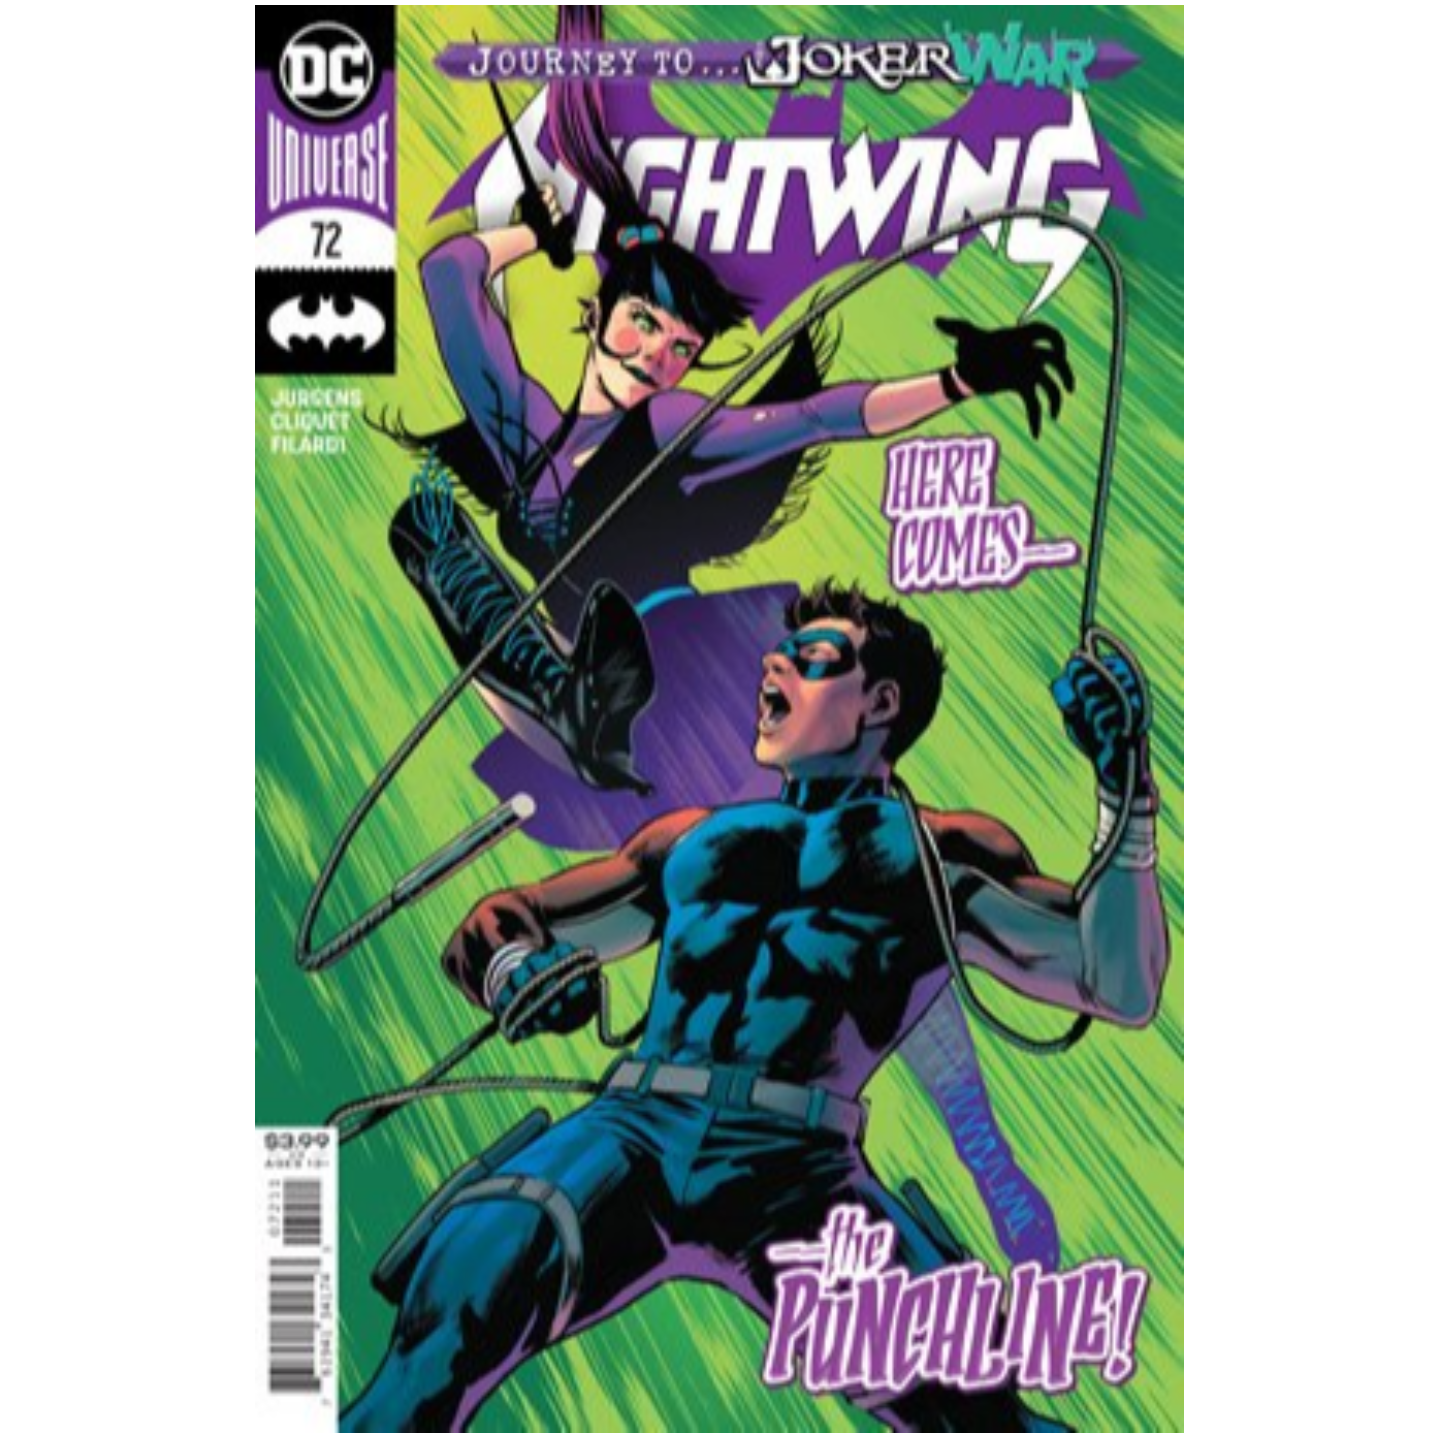 NIGHTWING #72 CVR A TRAVIS MOORE (JOKER WAR)